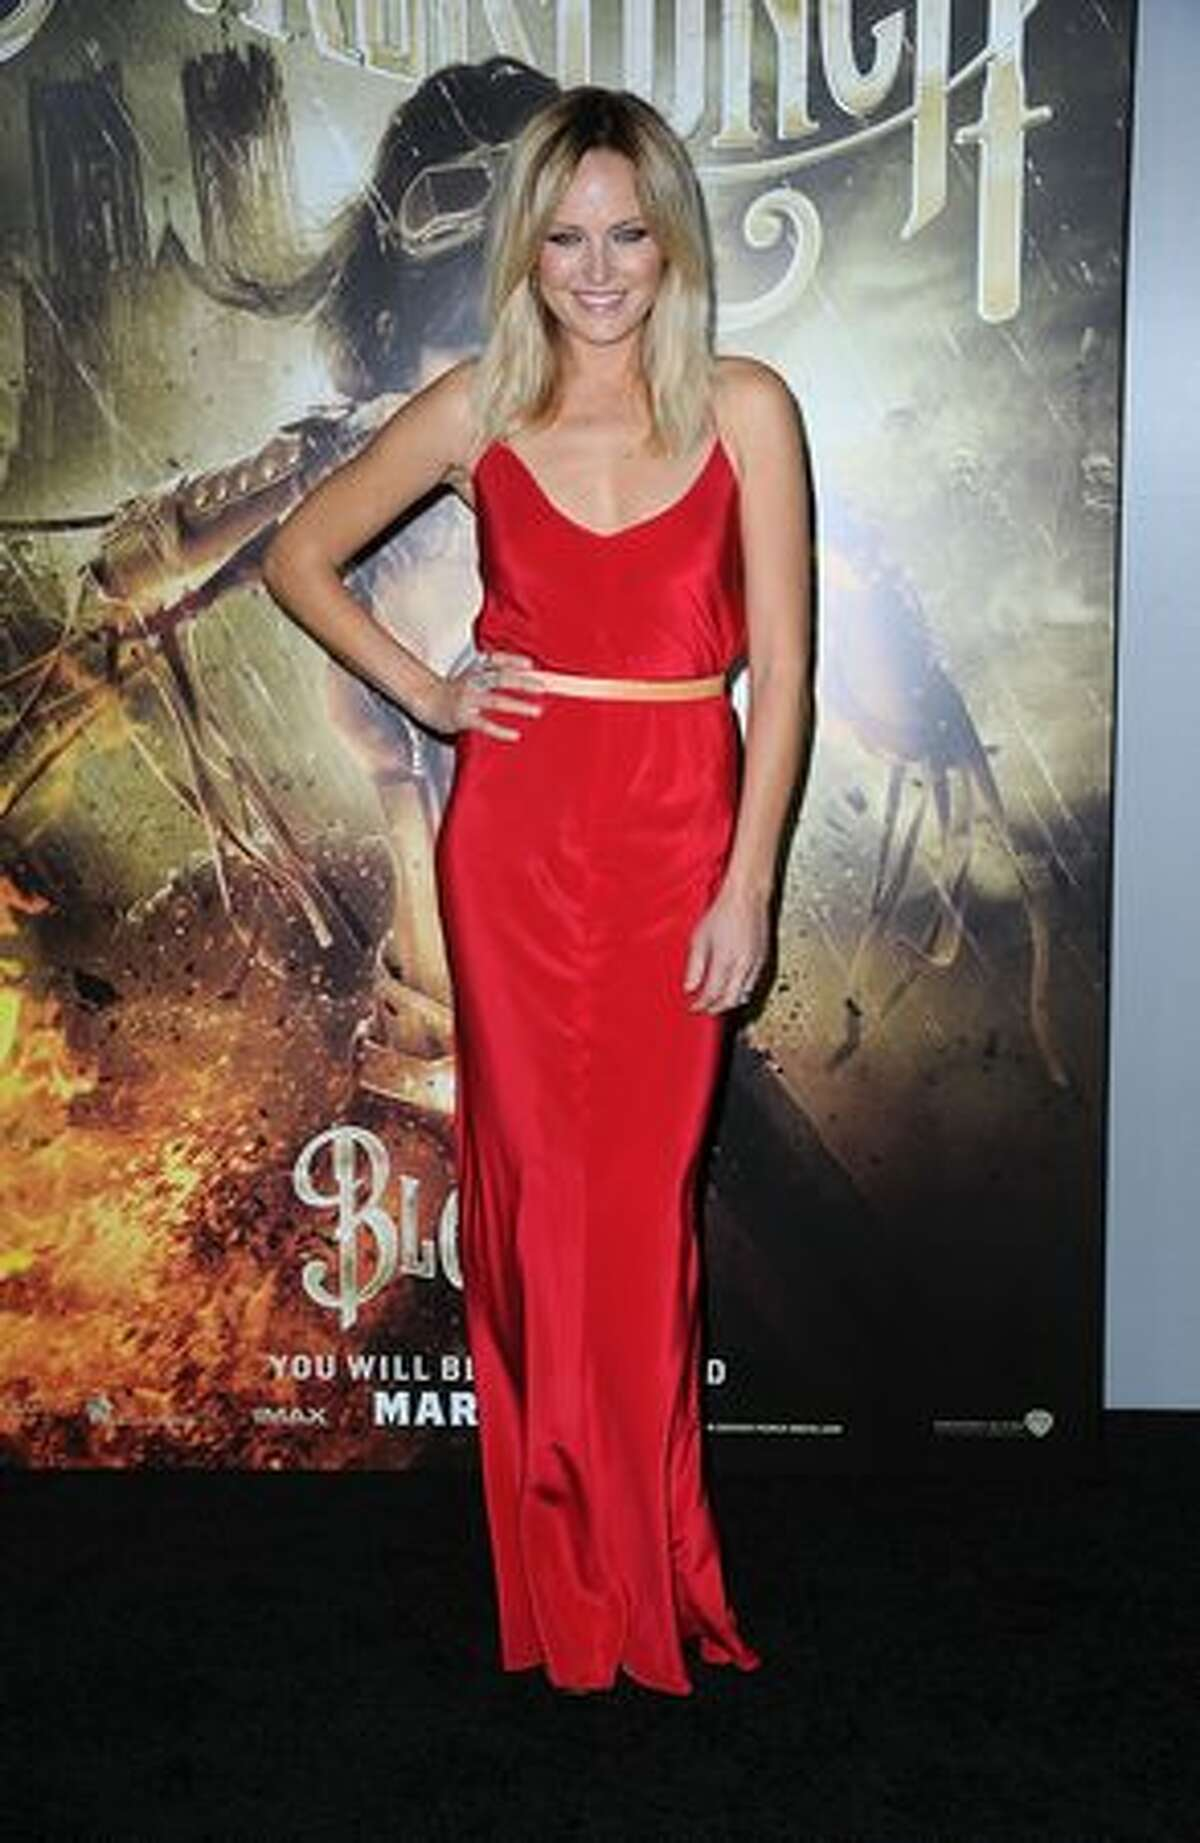 """Actress Malin Akerman arrives at the premiere of Warner Bros Pictures' """"Sucker Punch"""" at Grauman's Chinese Theatre on March 23, 2011 in Hollywood, California."""